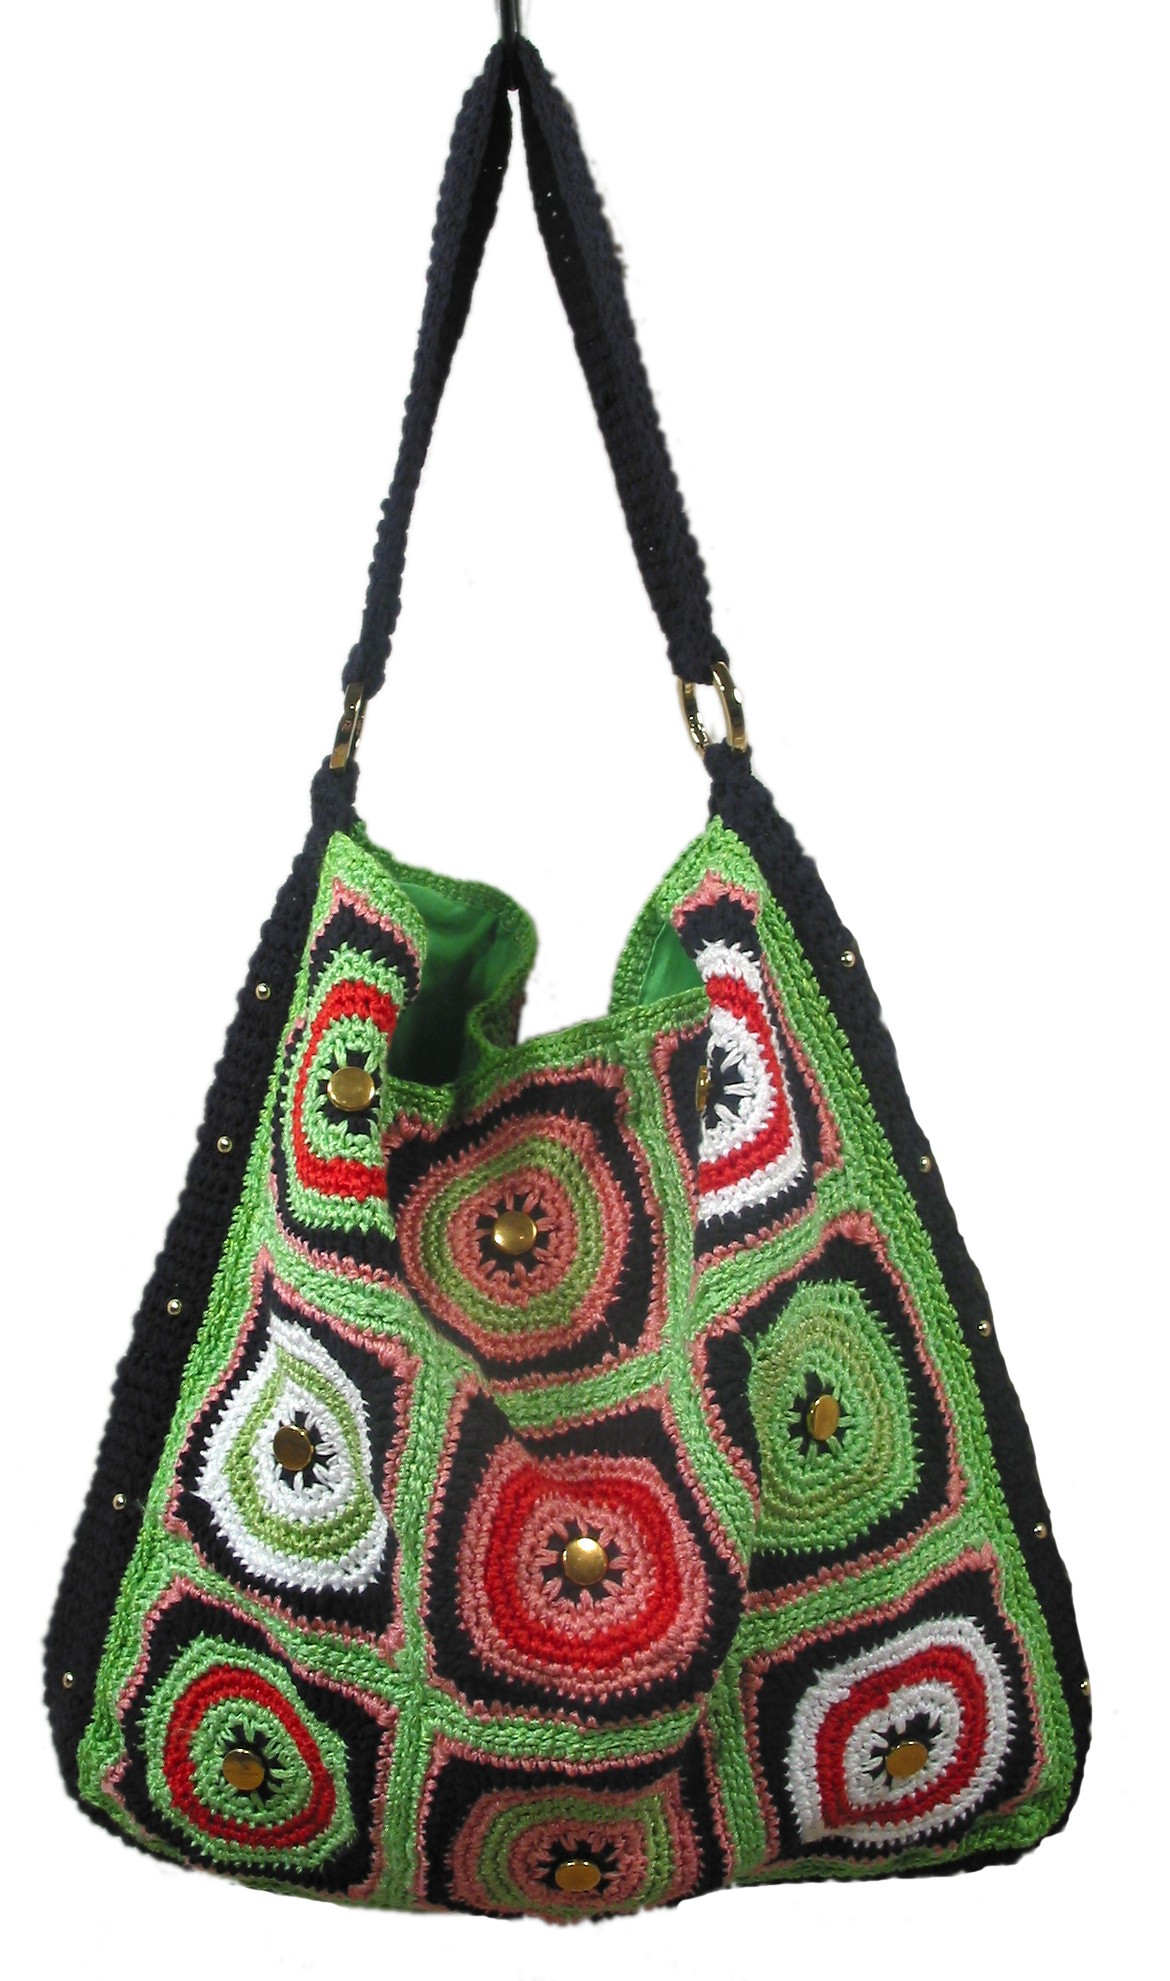 New Knit and Crochet Pattern Handy Hobo Handbags Knitting and Crochet Patterns Of Adorable 46 Ideas Knitting and Crochet Patterns